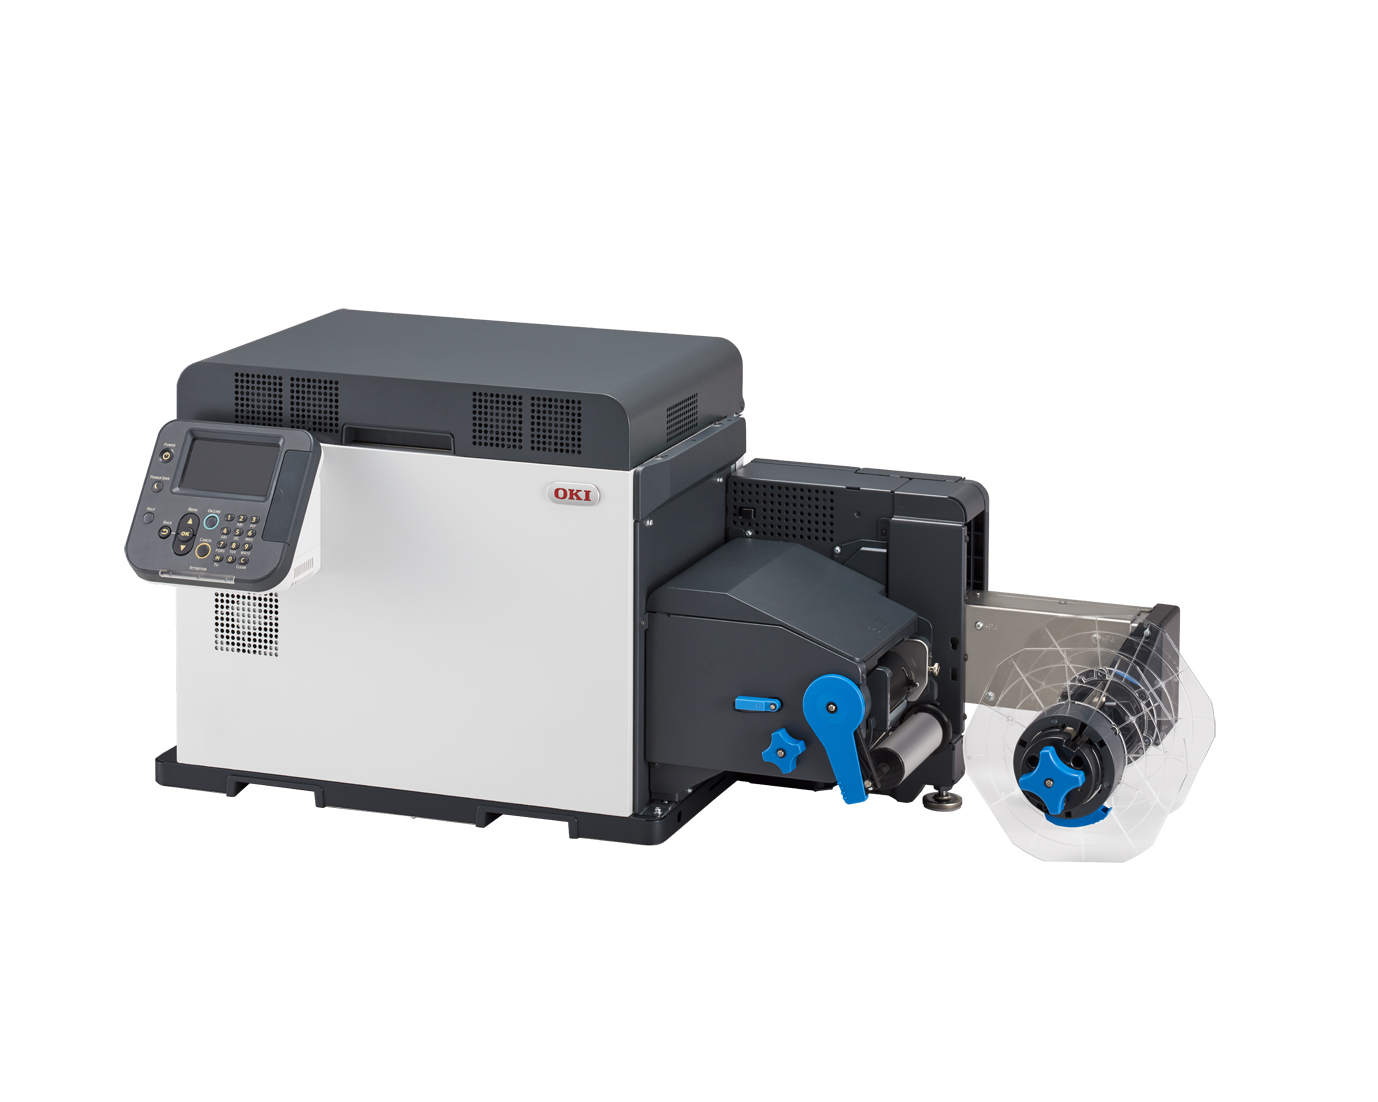 Label printer with barcode, Self adhesive label printer - Pro Series Label Printer